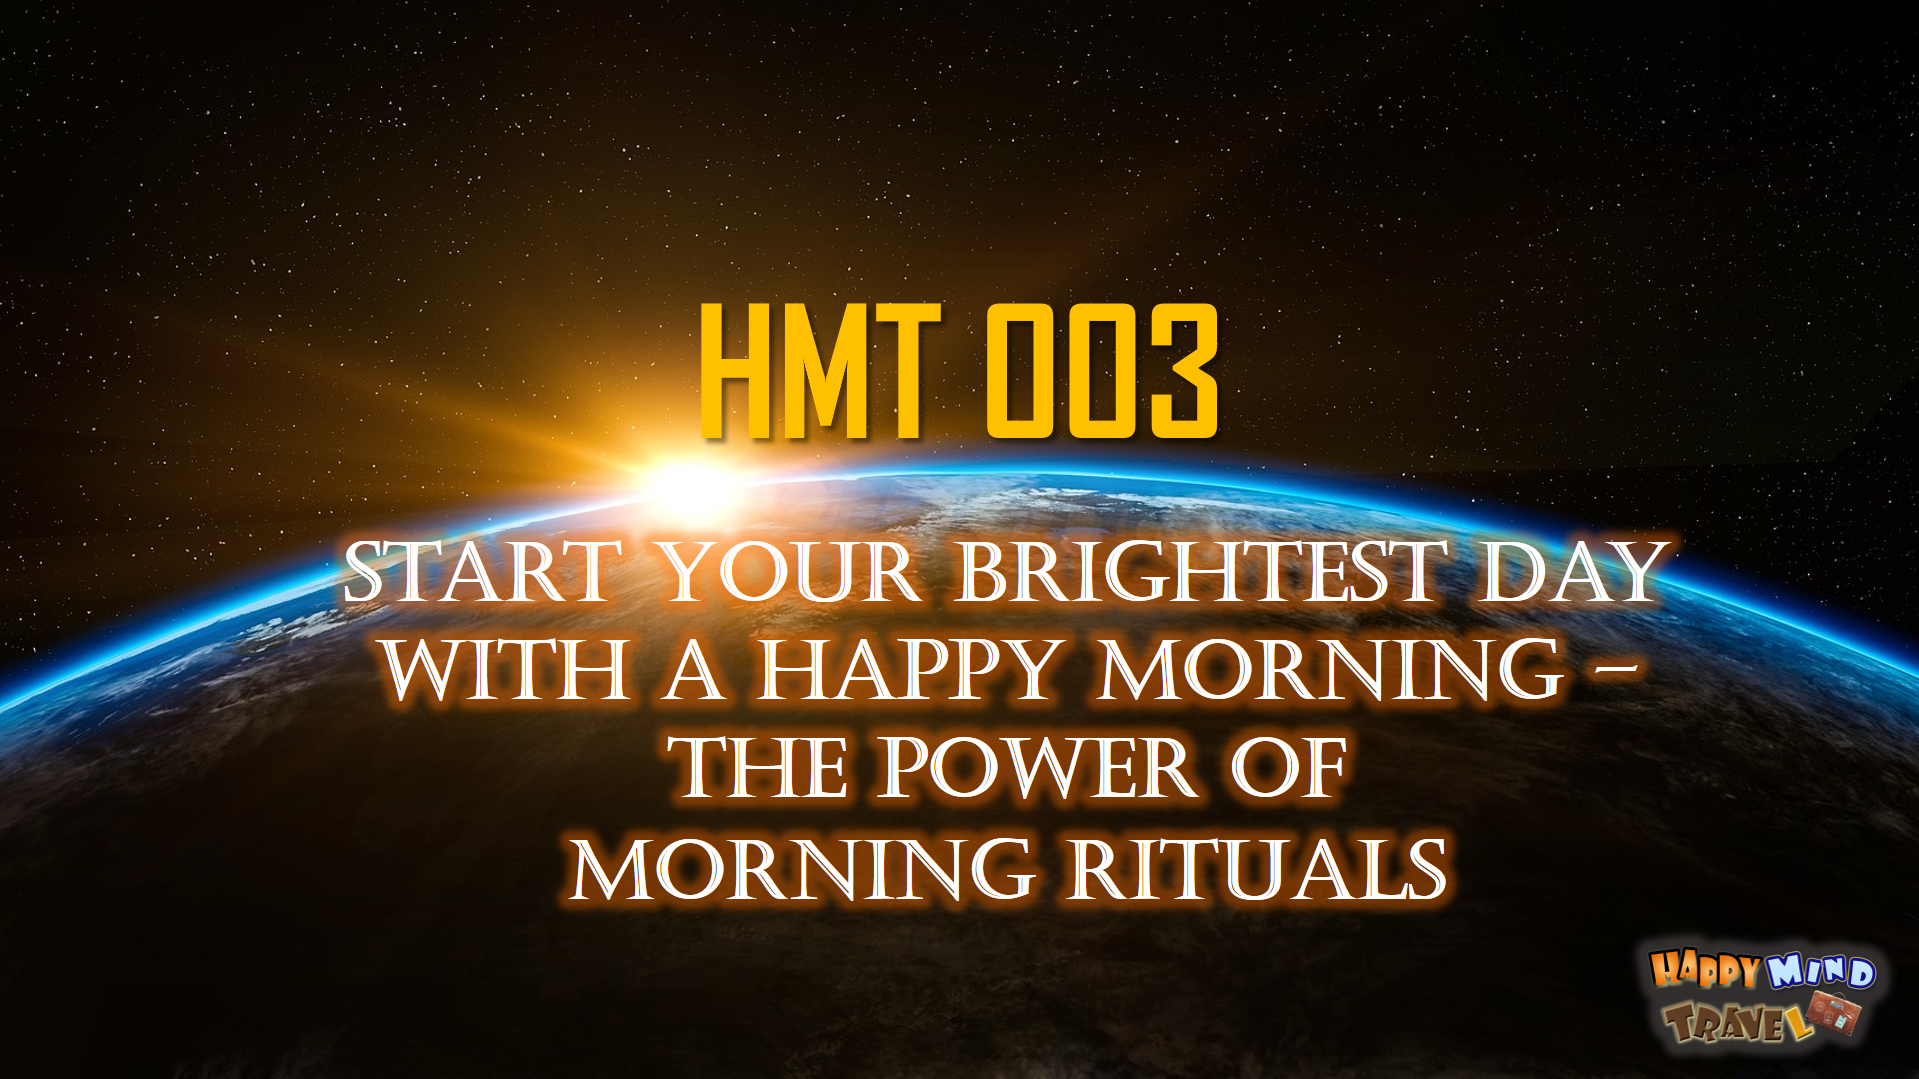 hmt 003 start your brightest day with a happy morning